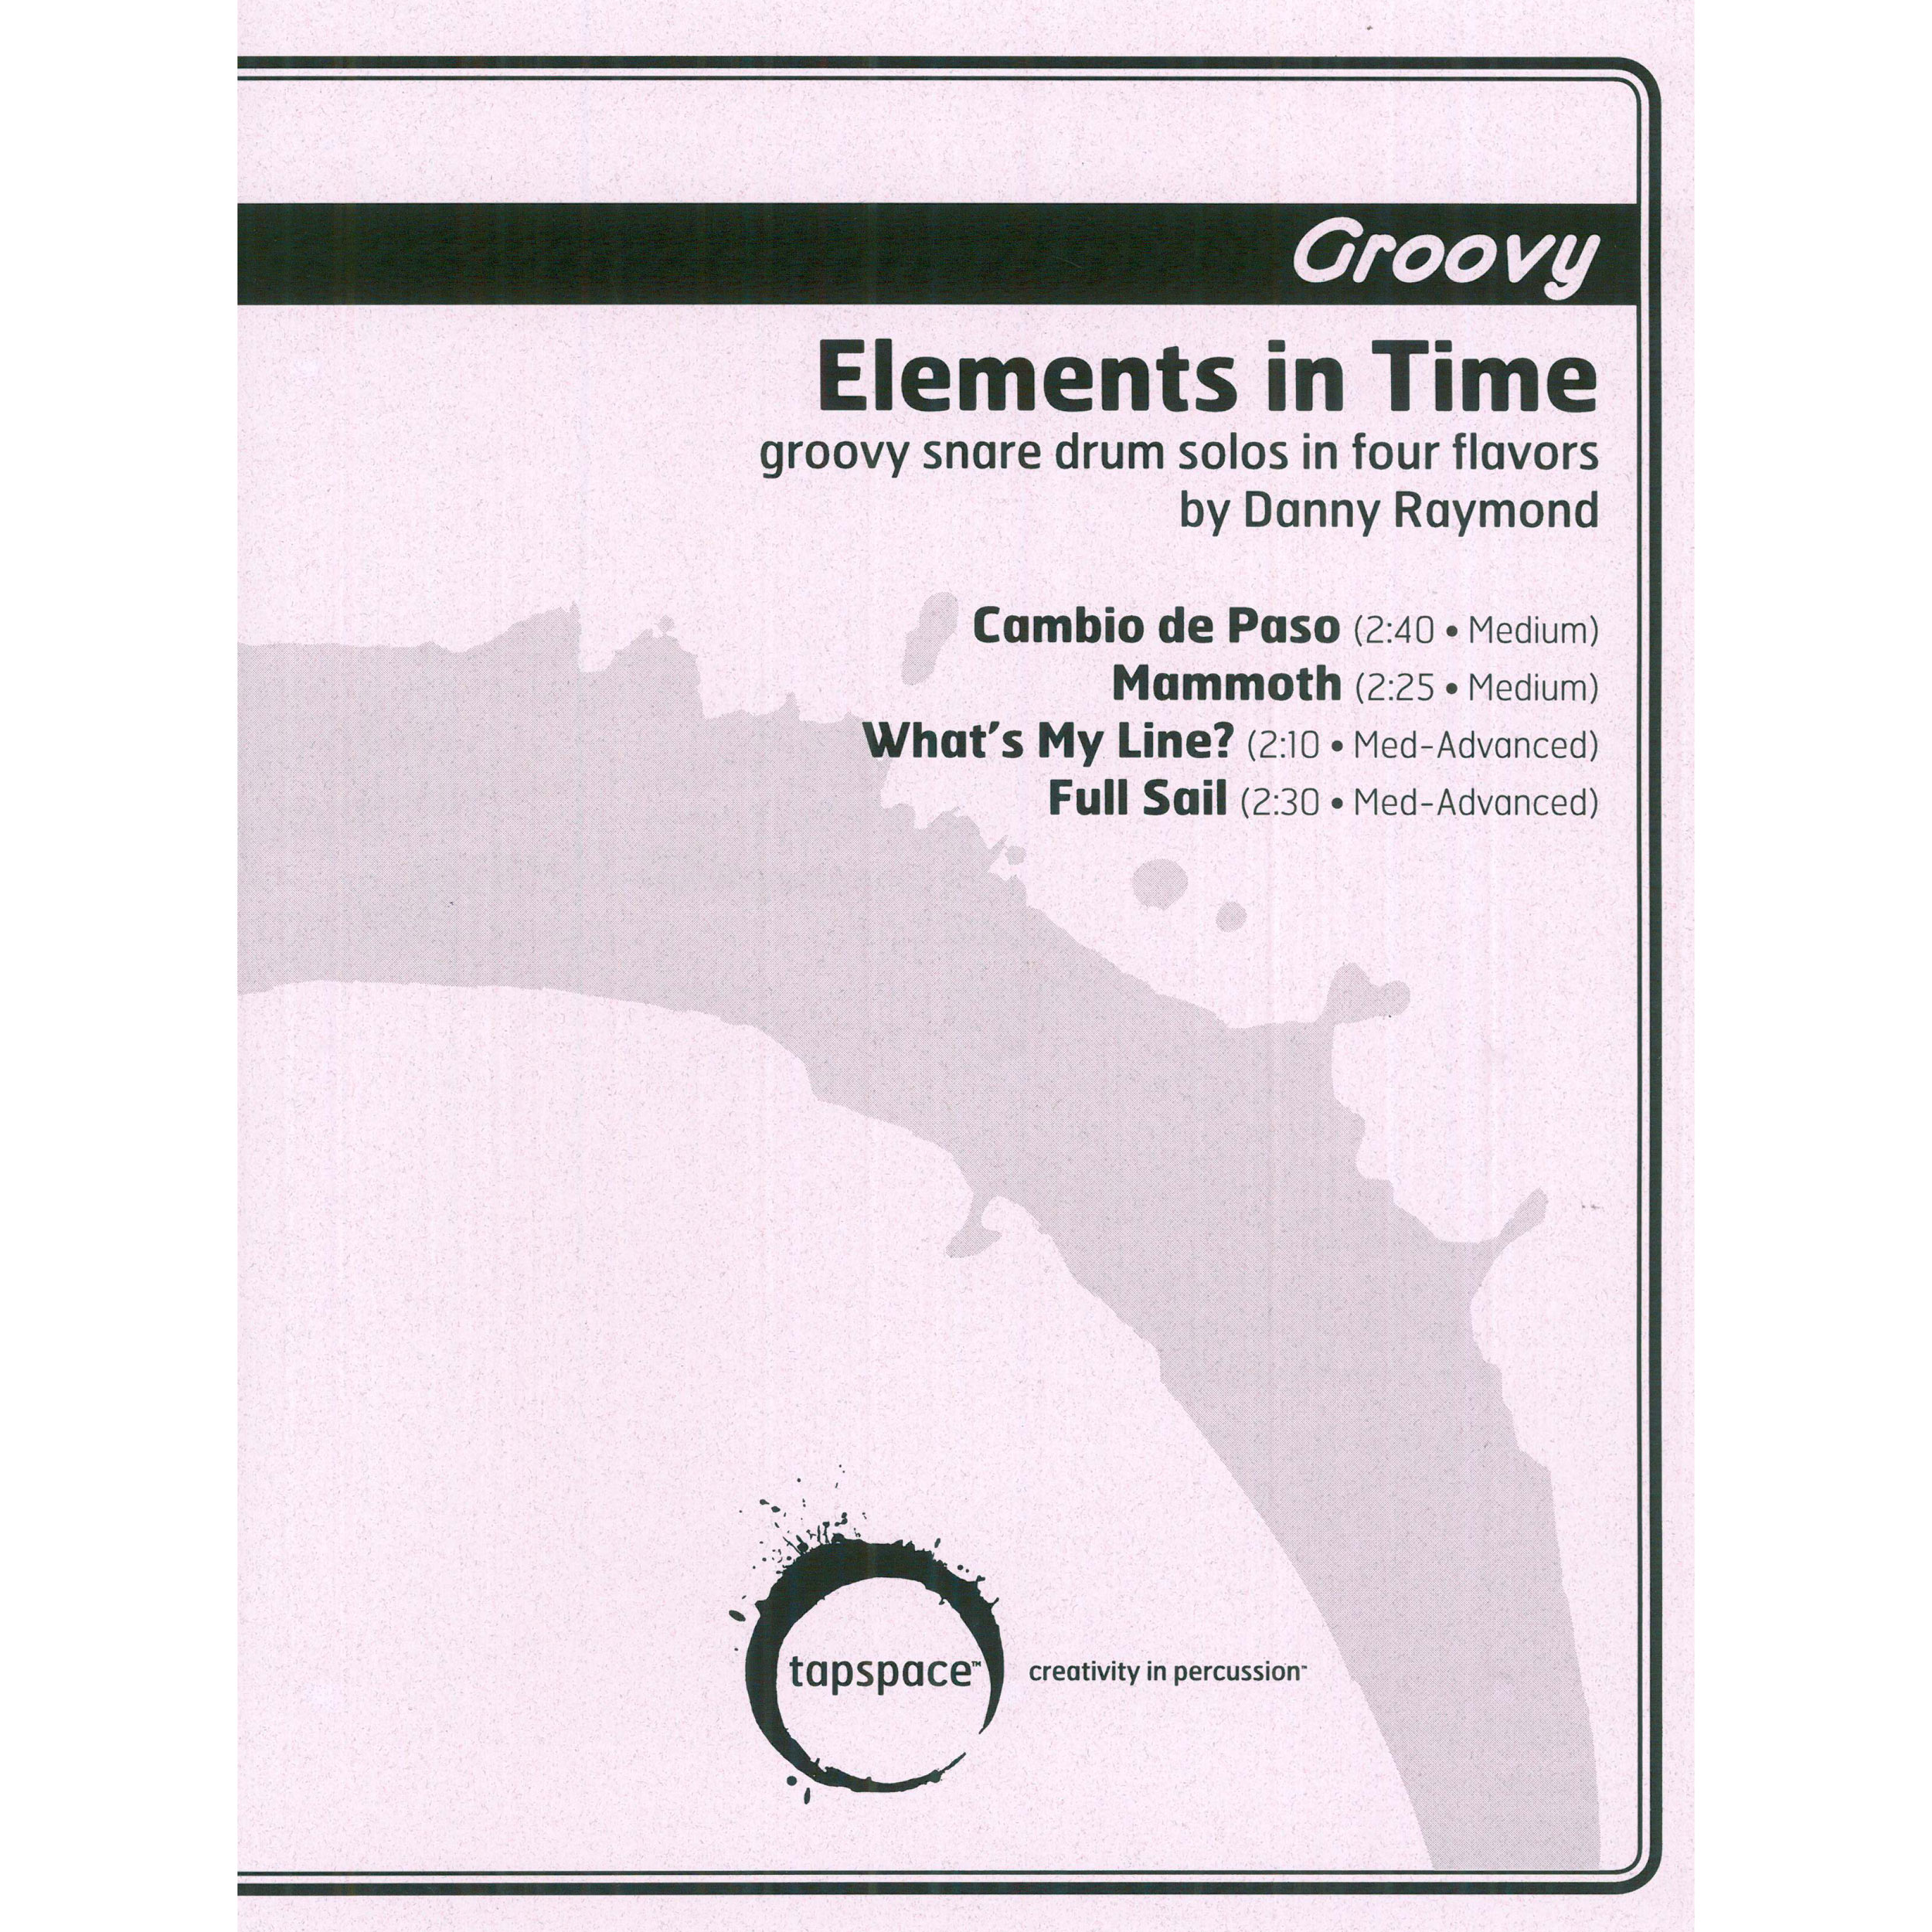 Elements in Time - GROOVY by Danny Raymond